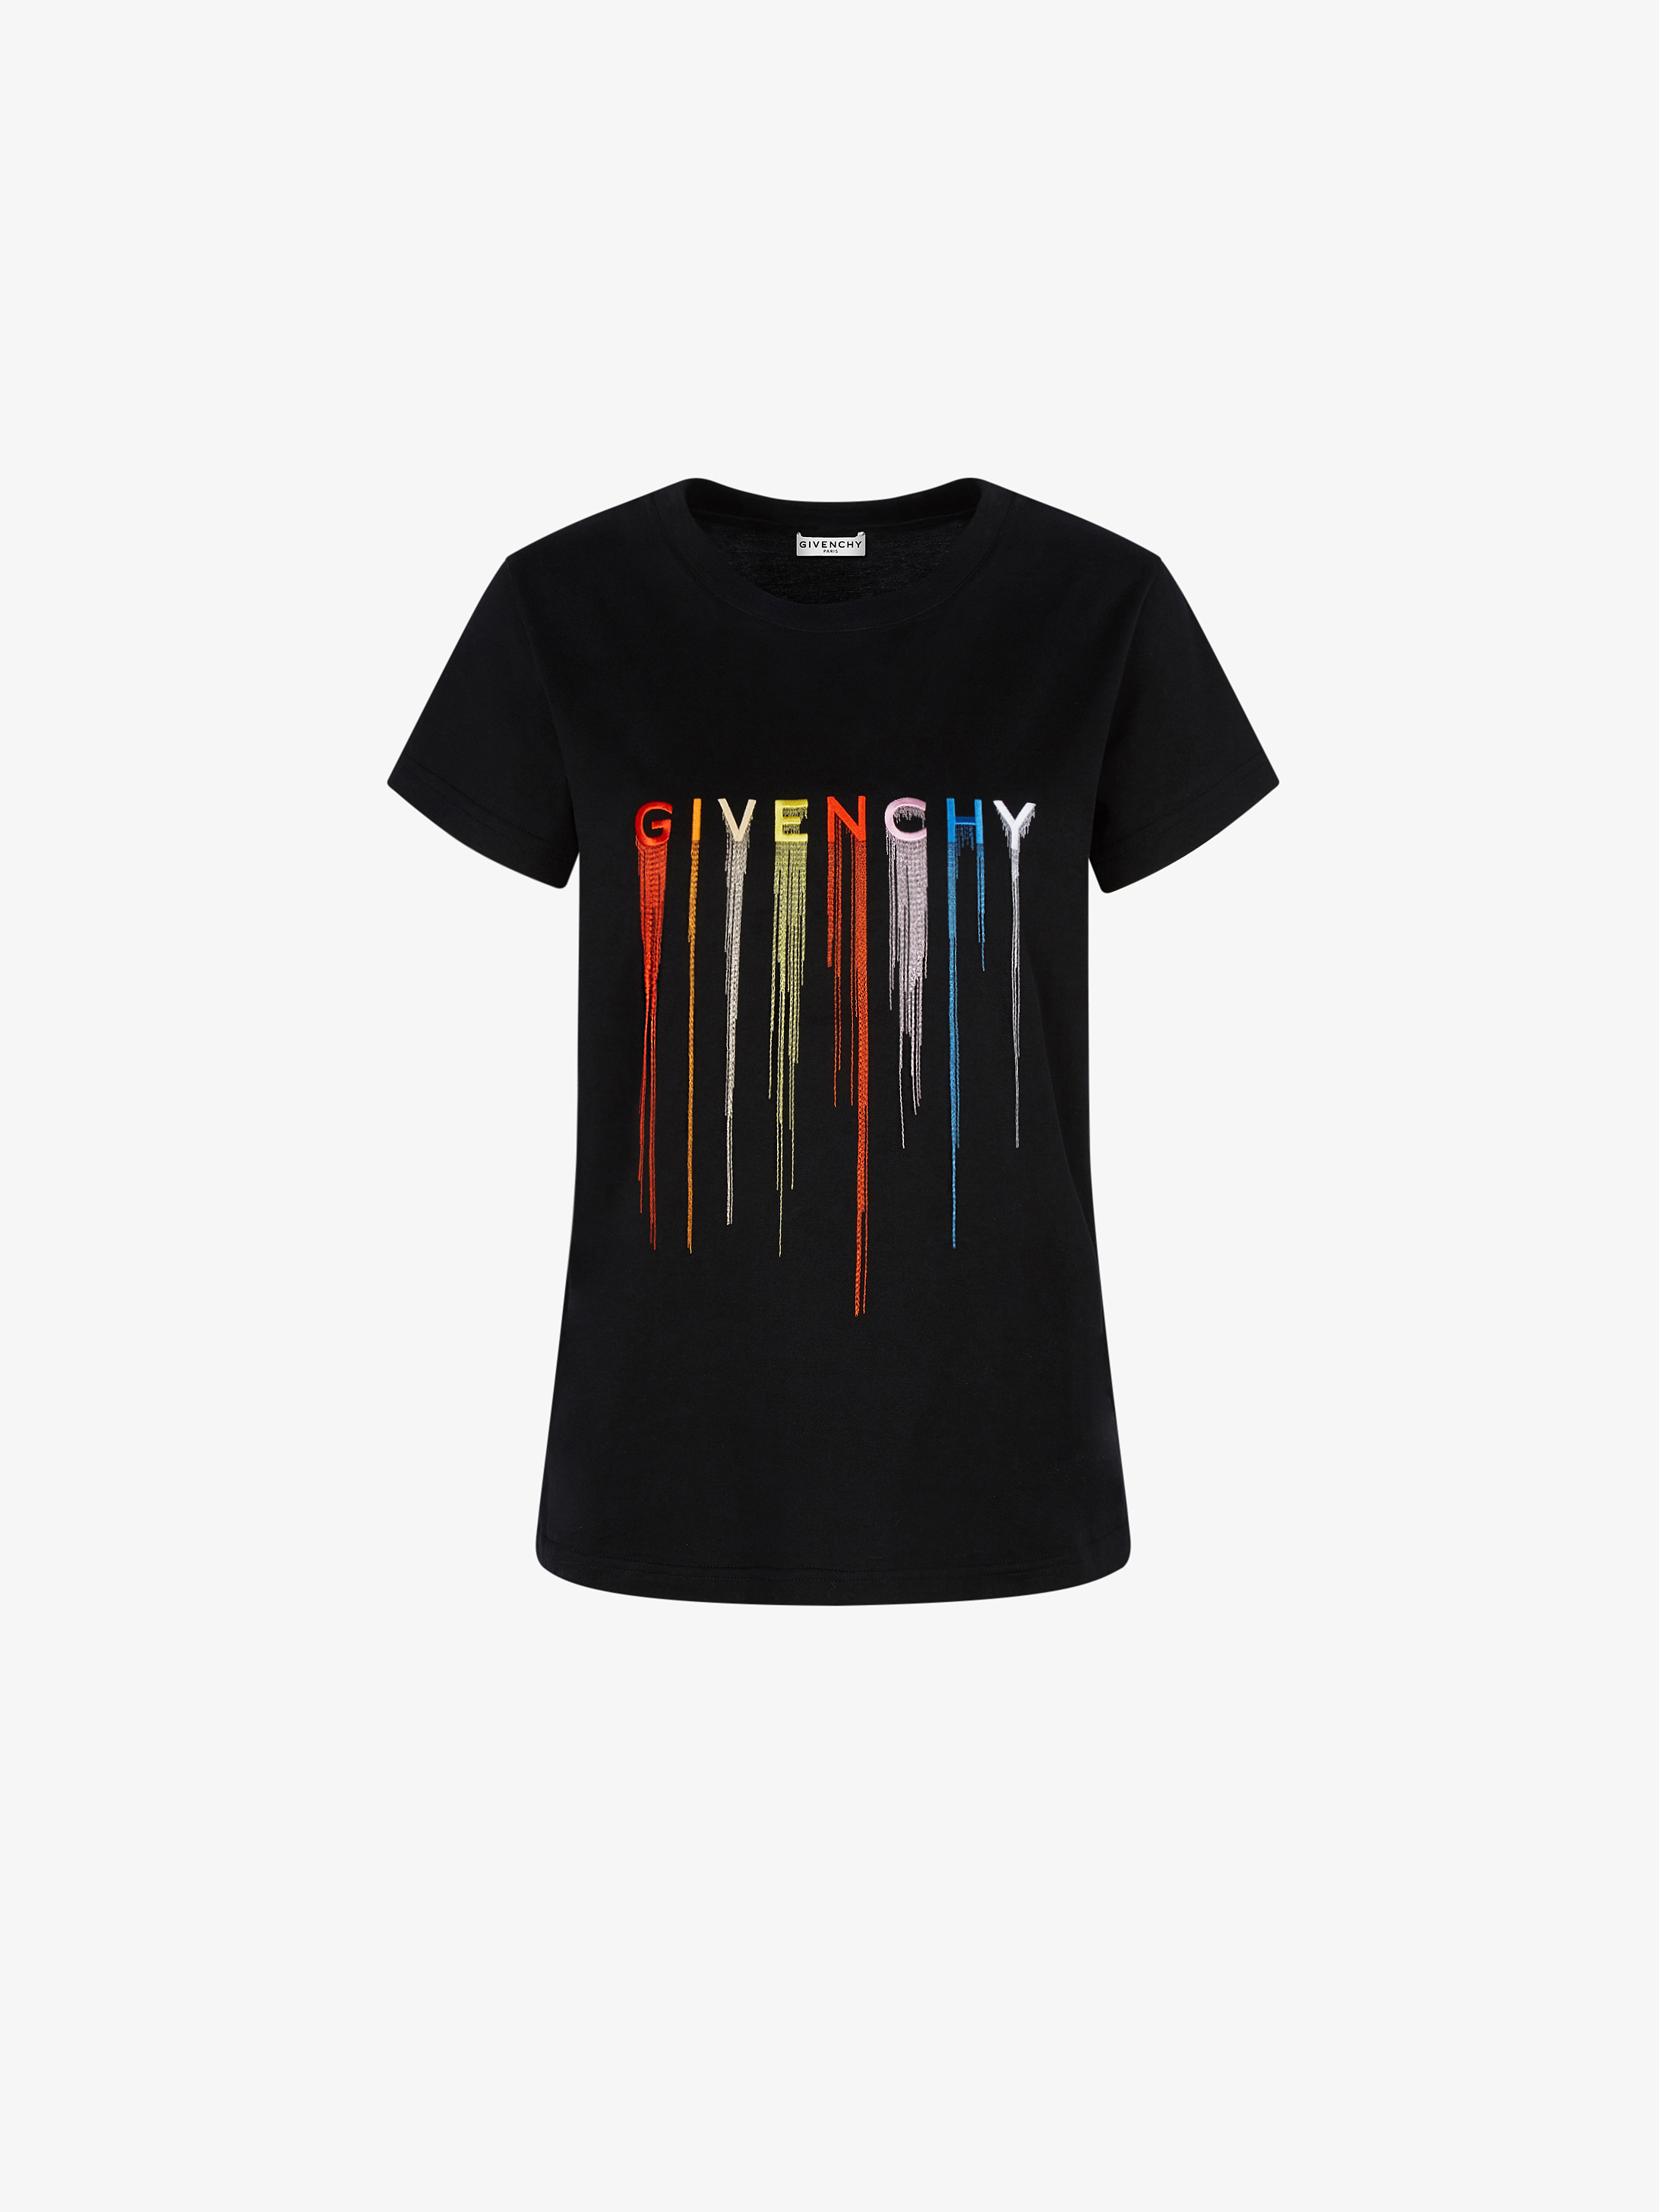 GIVENCHY multicolored embroidered slim fit t-shirt